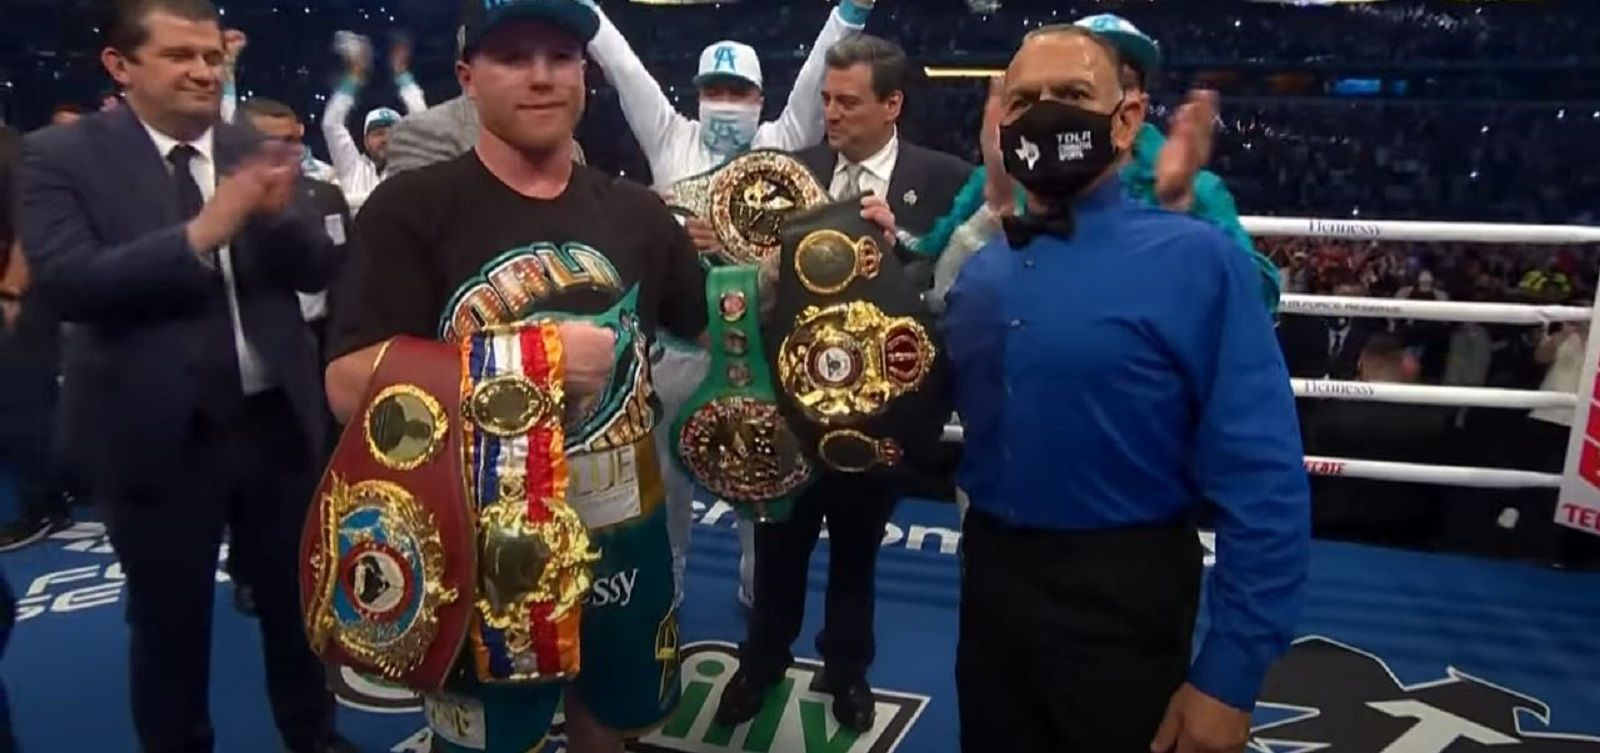 Canelo's Trainer Had An Emotional Response After Beating Saunders